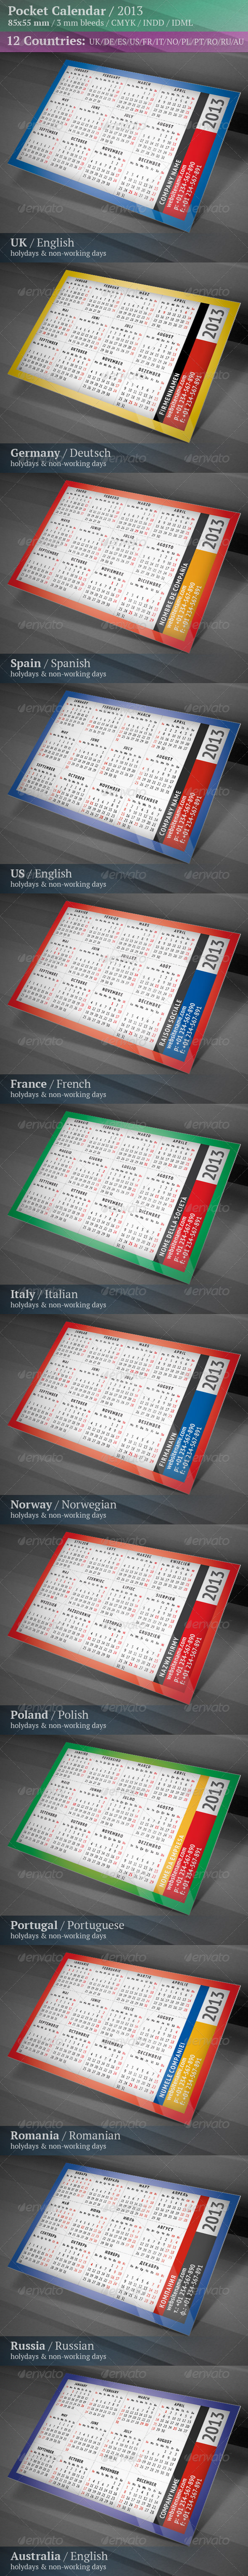 GraphicRiver Pocket Calendar 2013 Multilingual 3496811